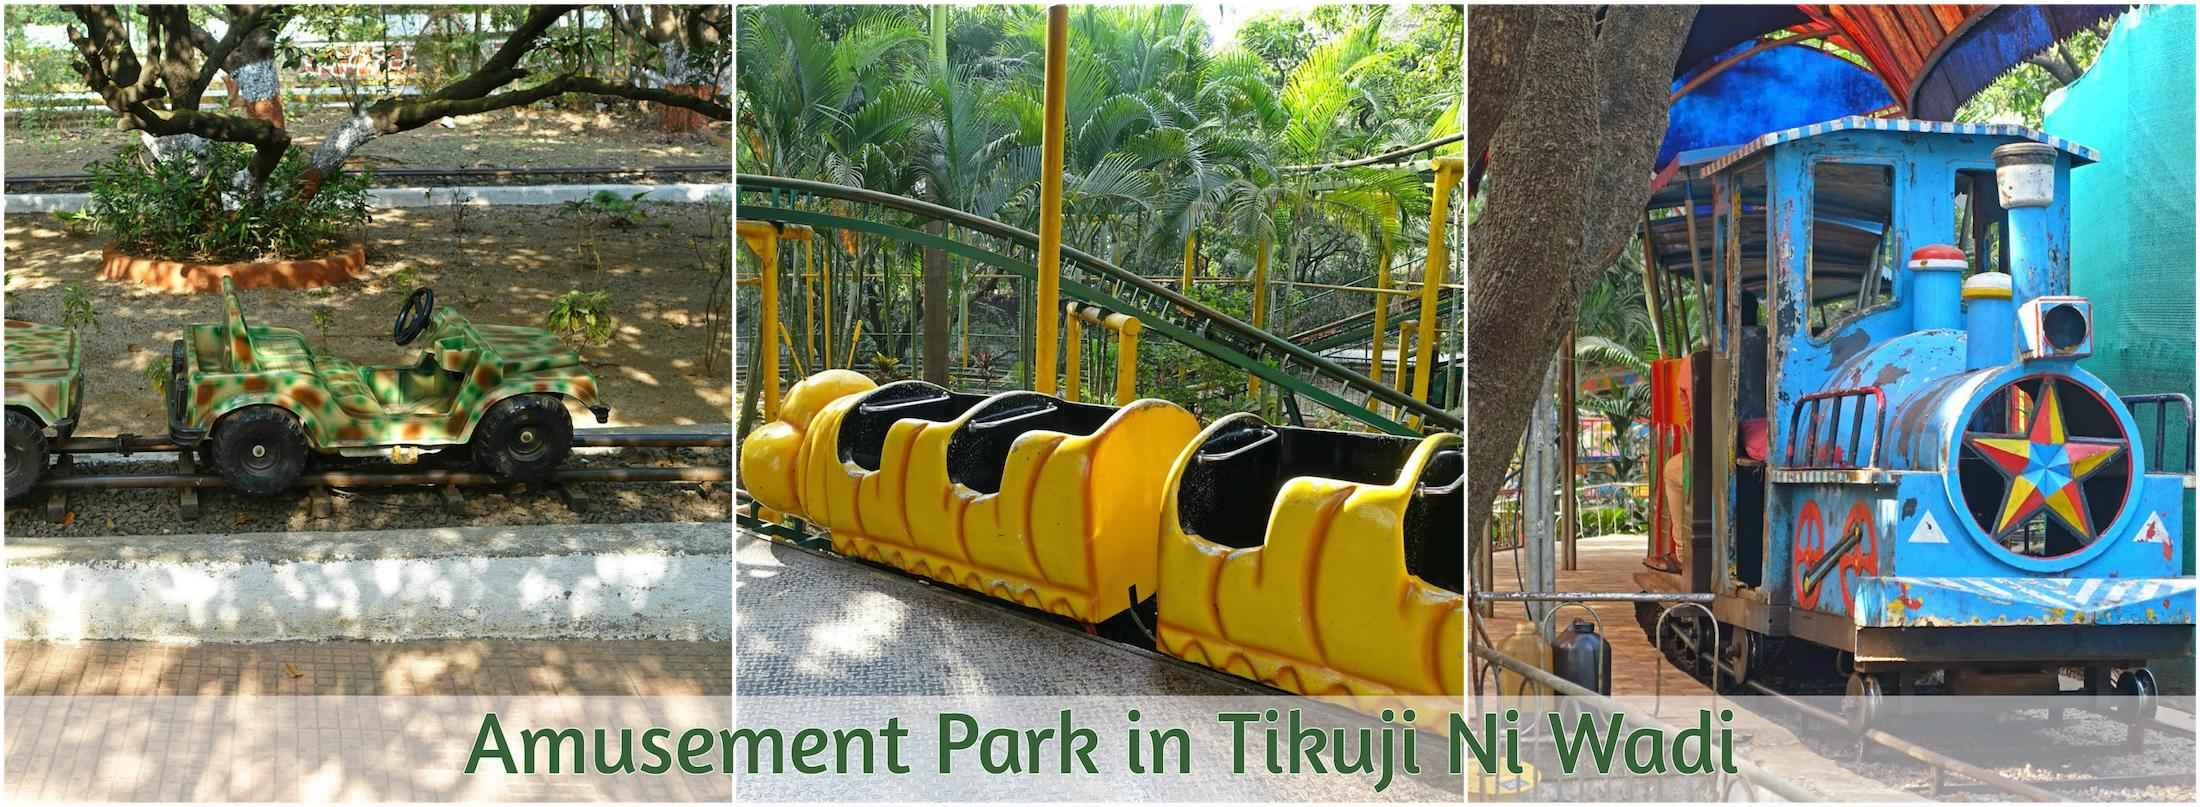 Amusement-Park-at-Tiku-ji-ni-wadi.